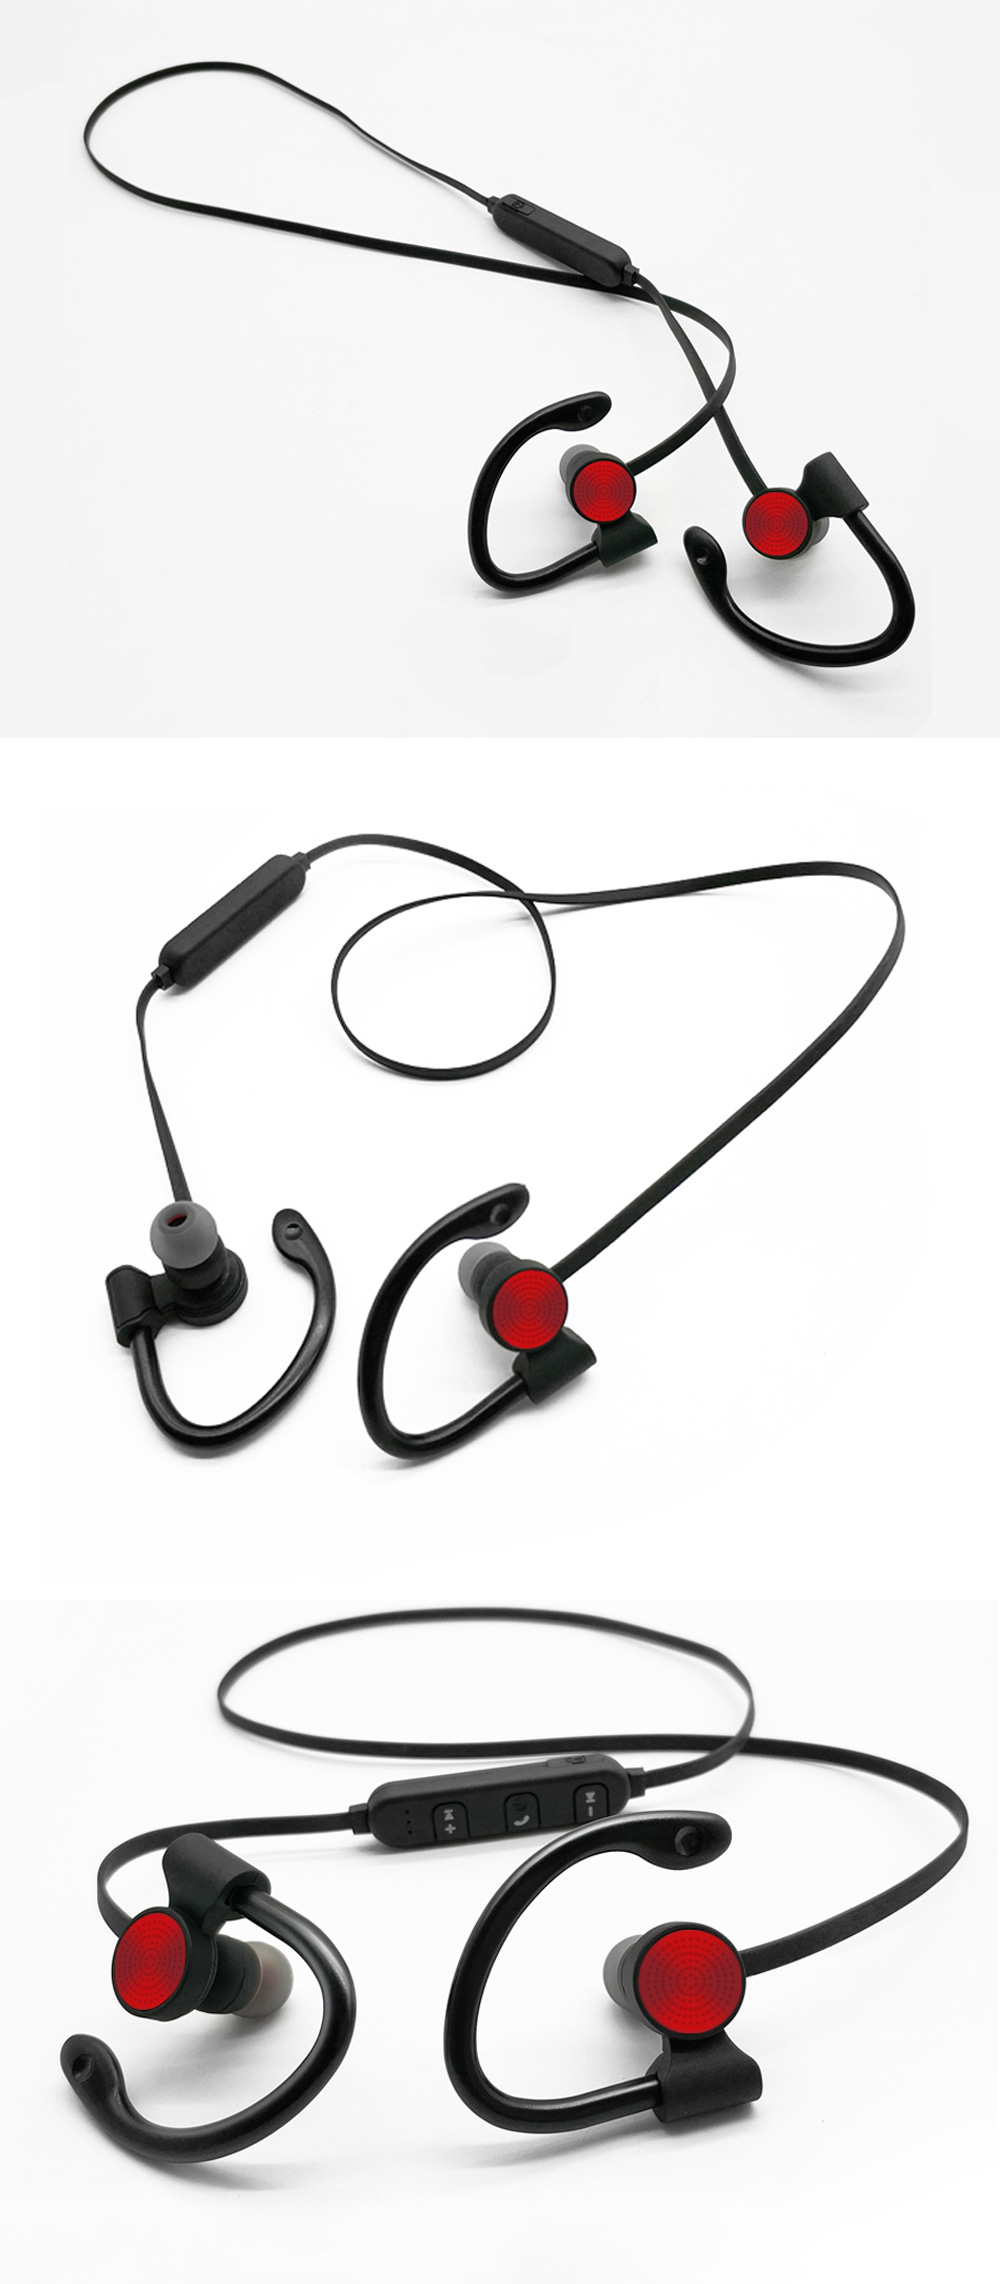 k1 bluetooth earphone show pictures